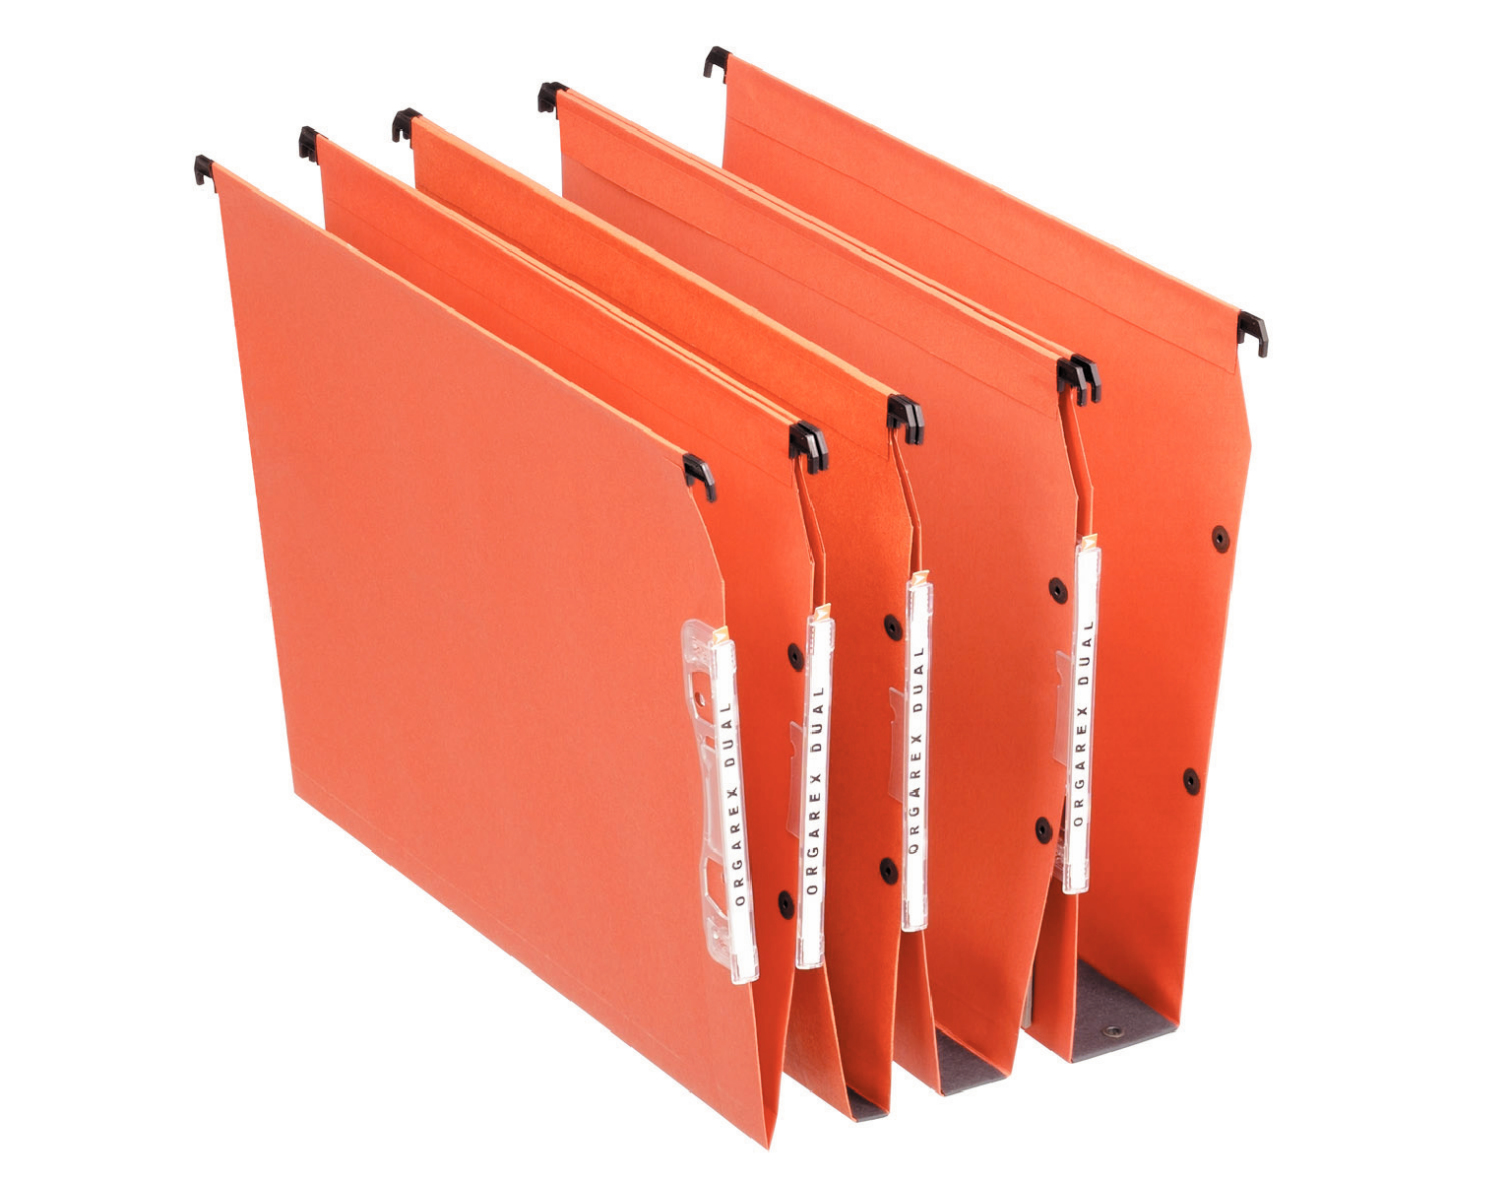 21627 esselte Esselte Orgarex Lateral File V-base A4 Orange 21627 (pk25) - AD01